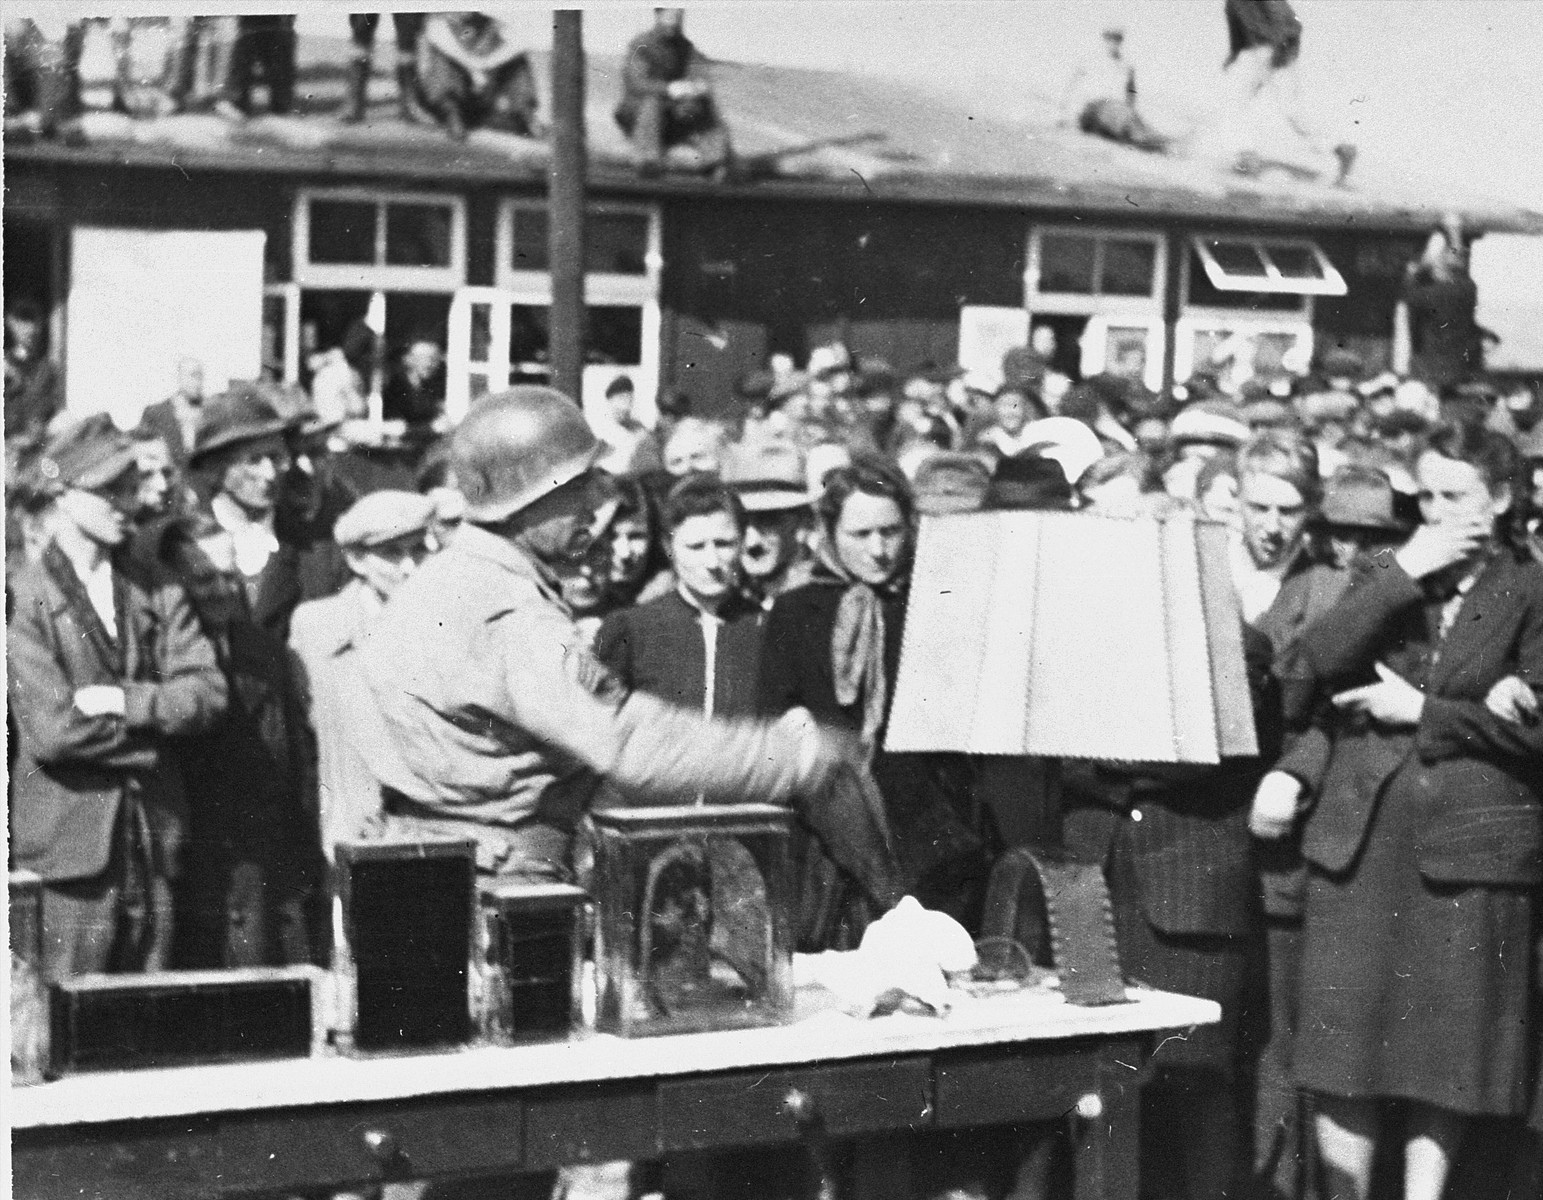 American soldiers force German civilians to view  items made from human skin and body parts, in Buchenwald.